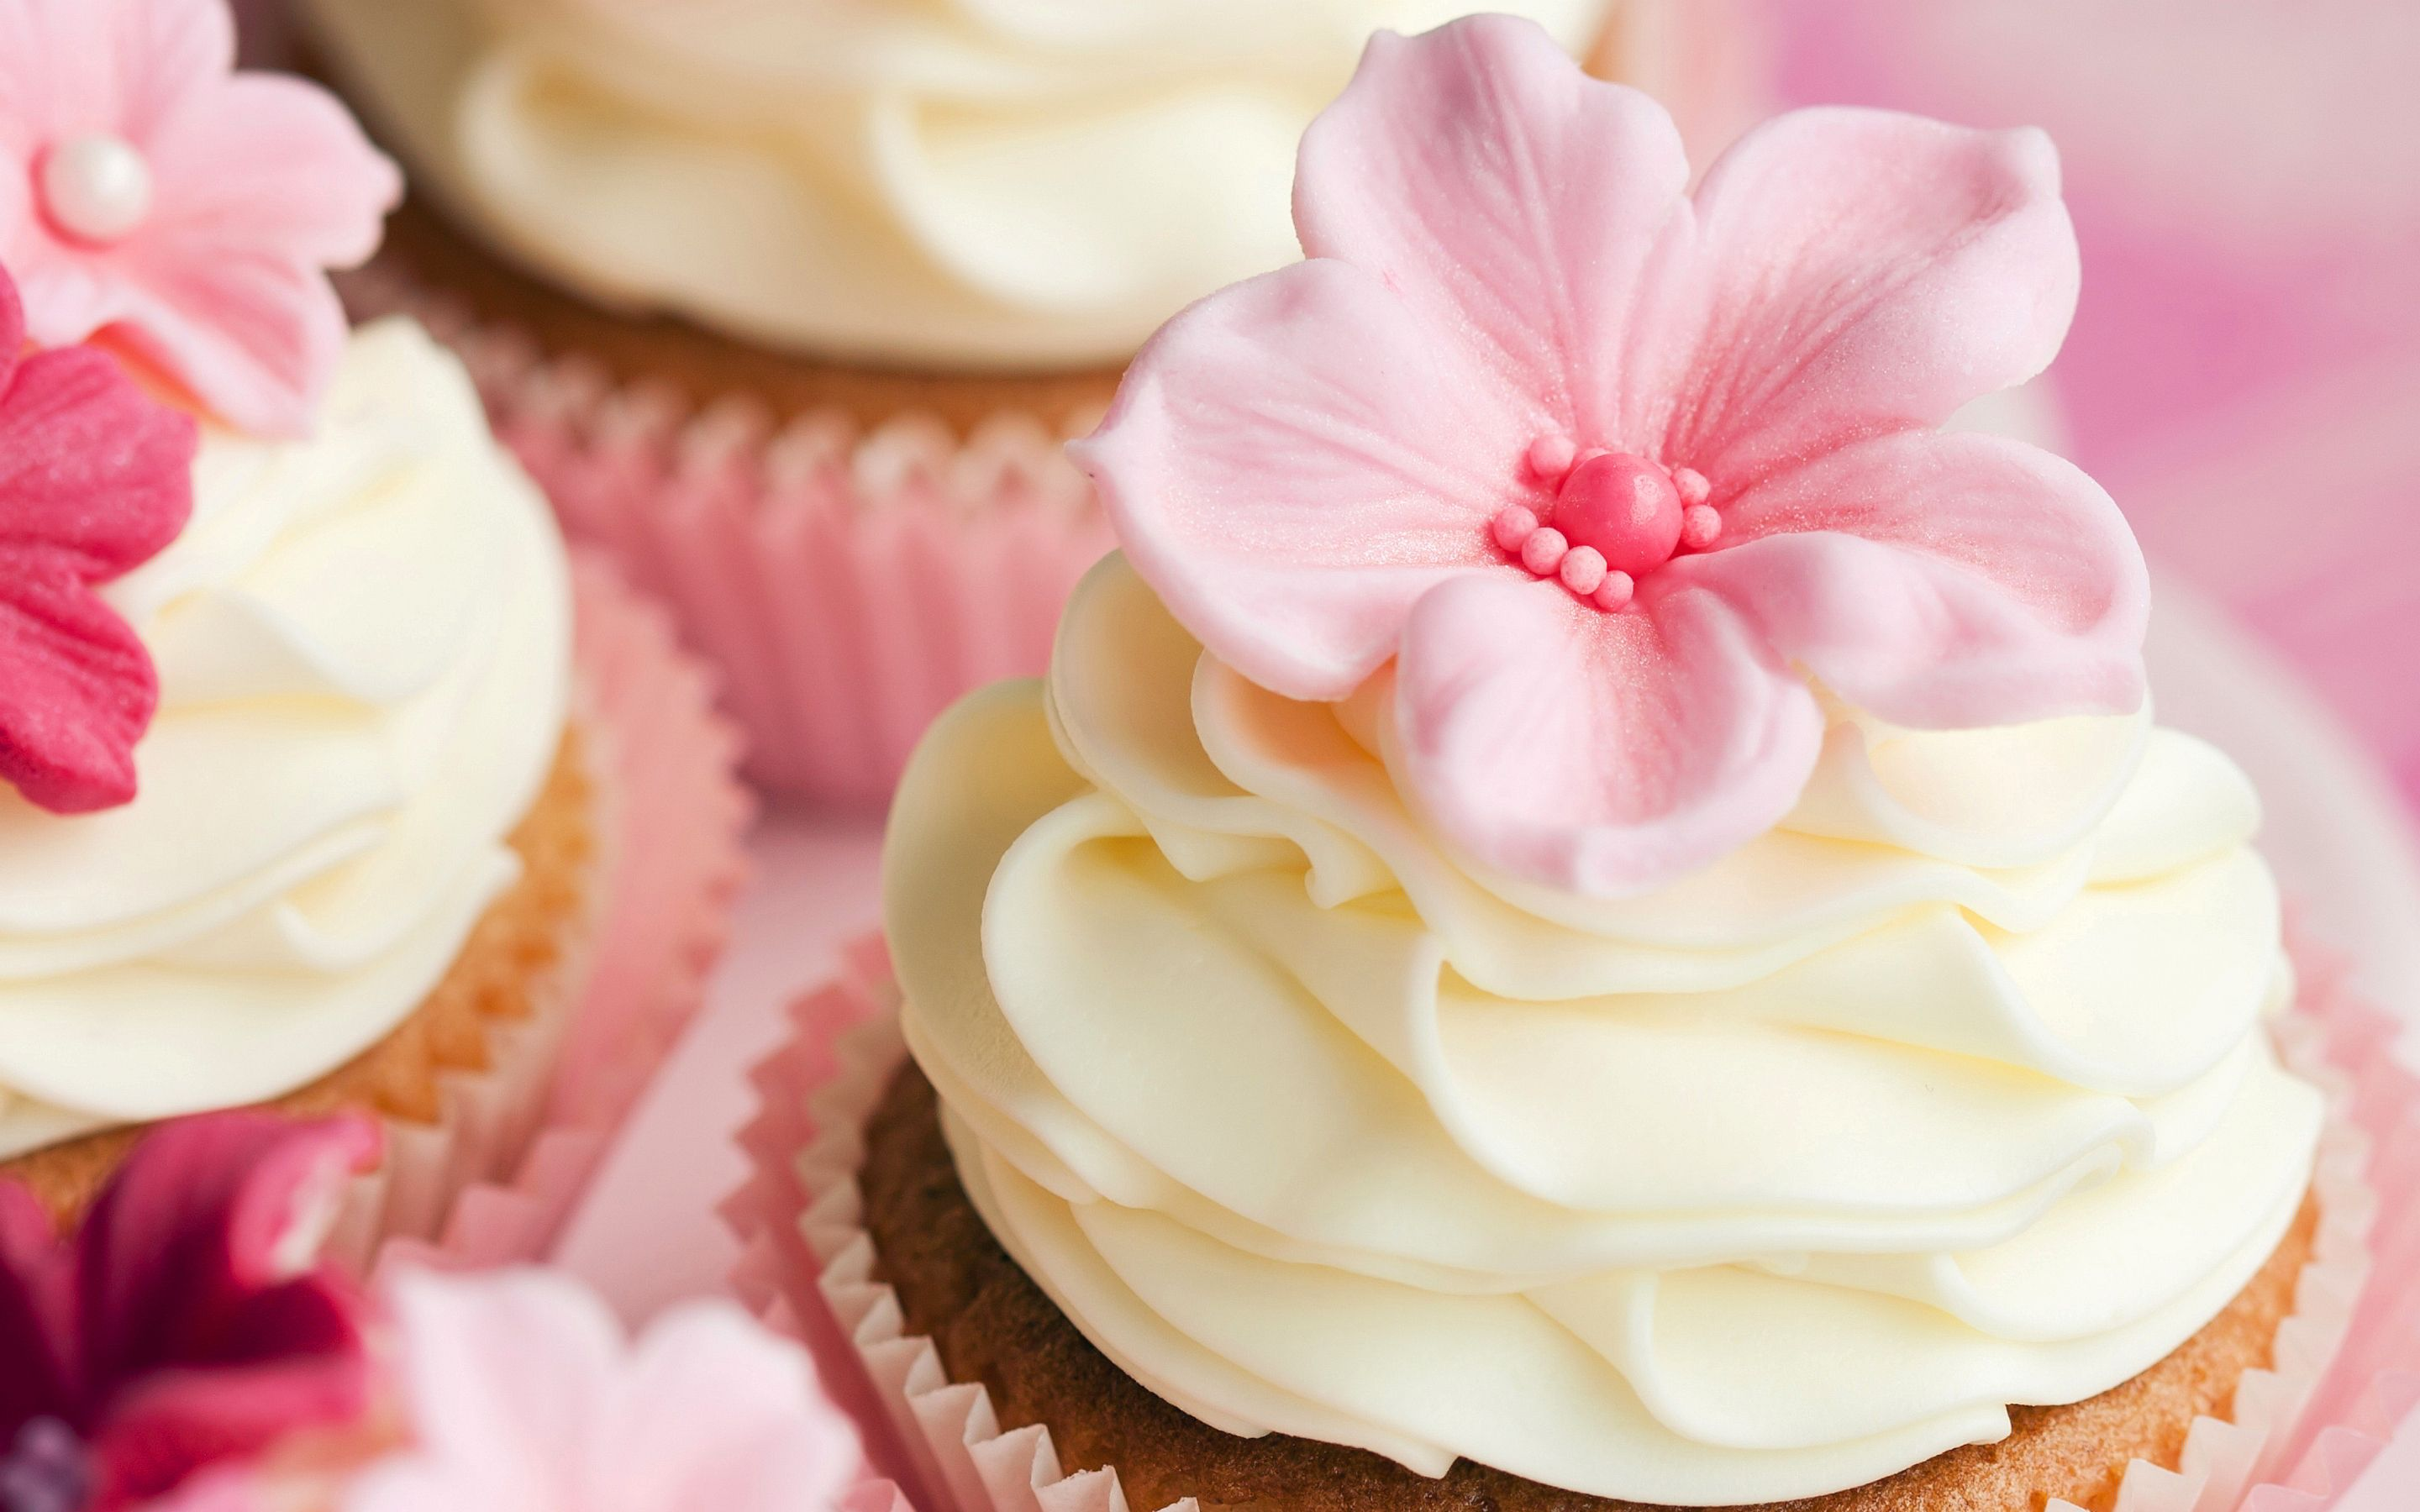 cupcakes wallpaper cupcakes live images hd wallpapers | hd